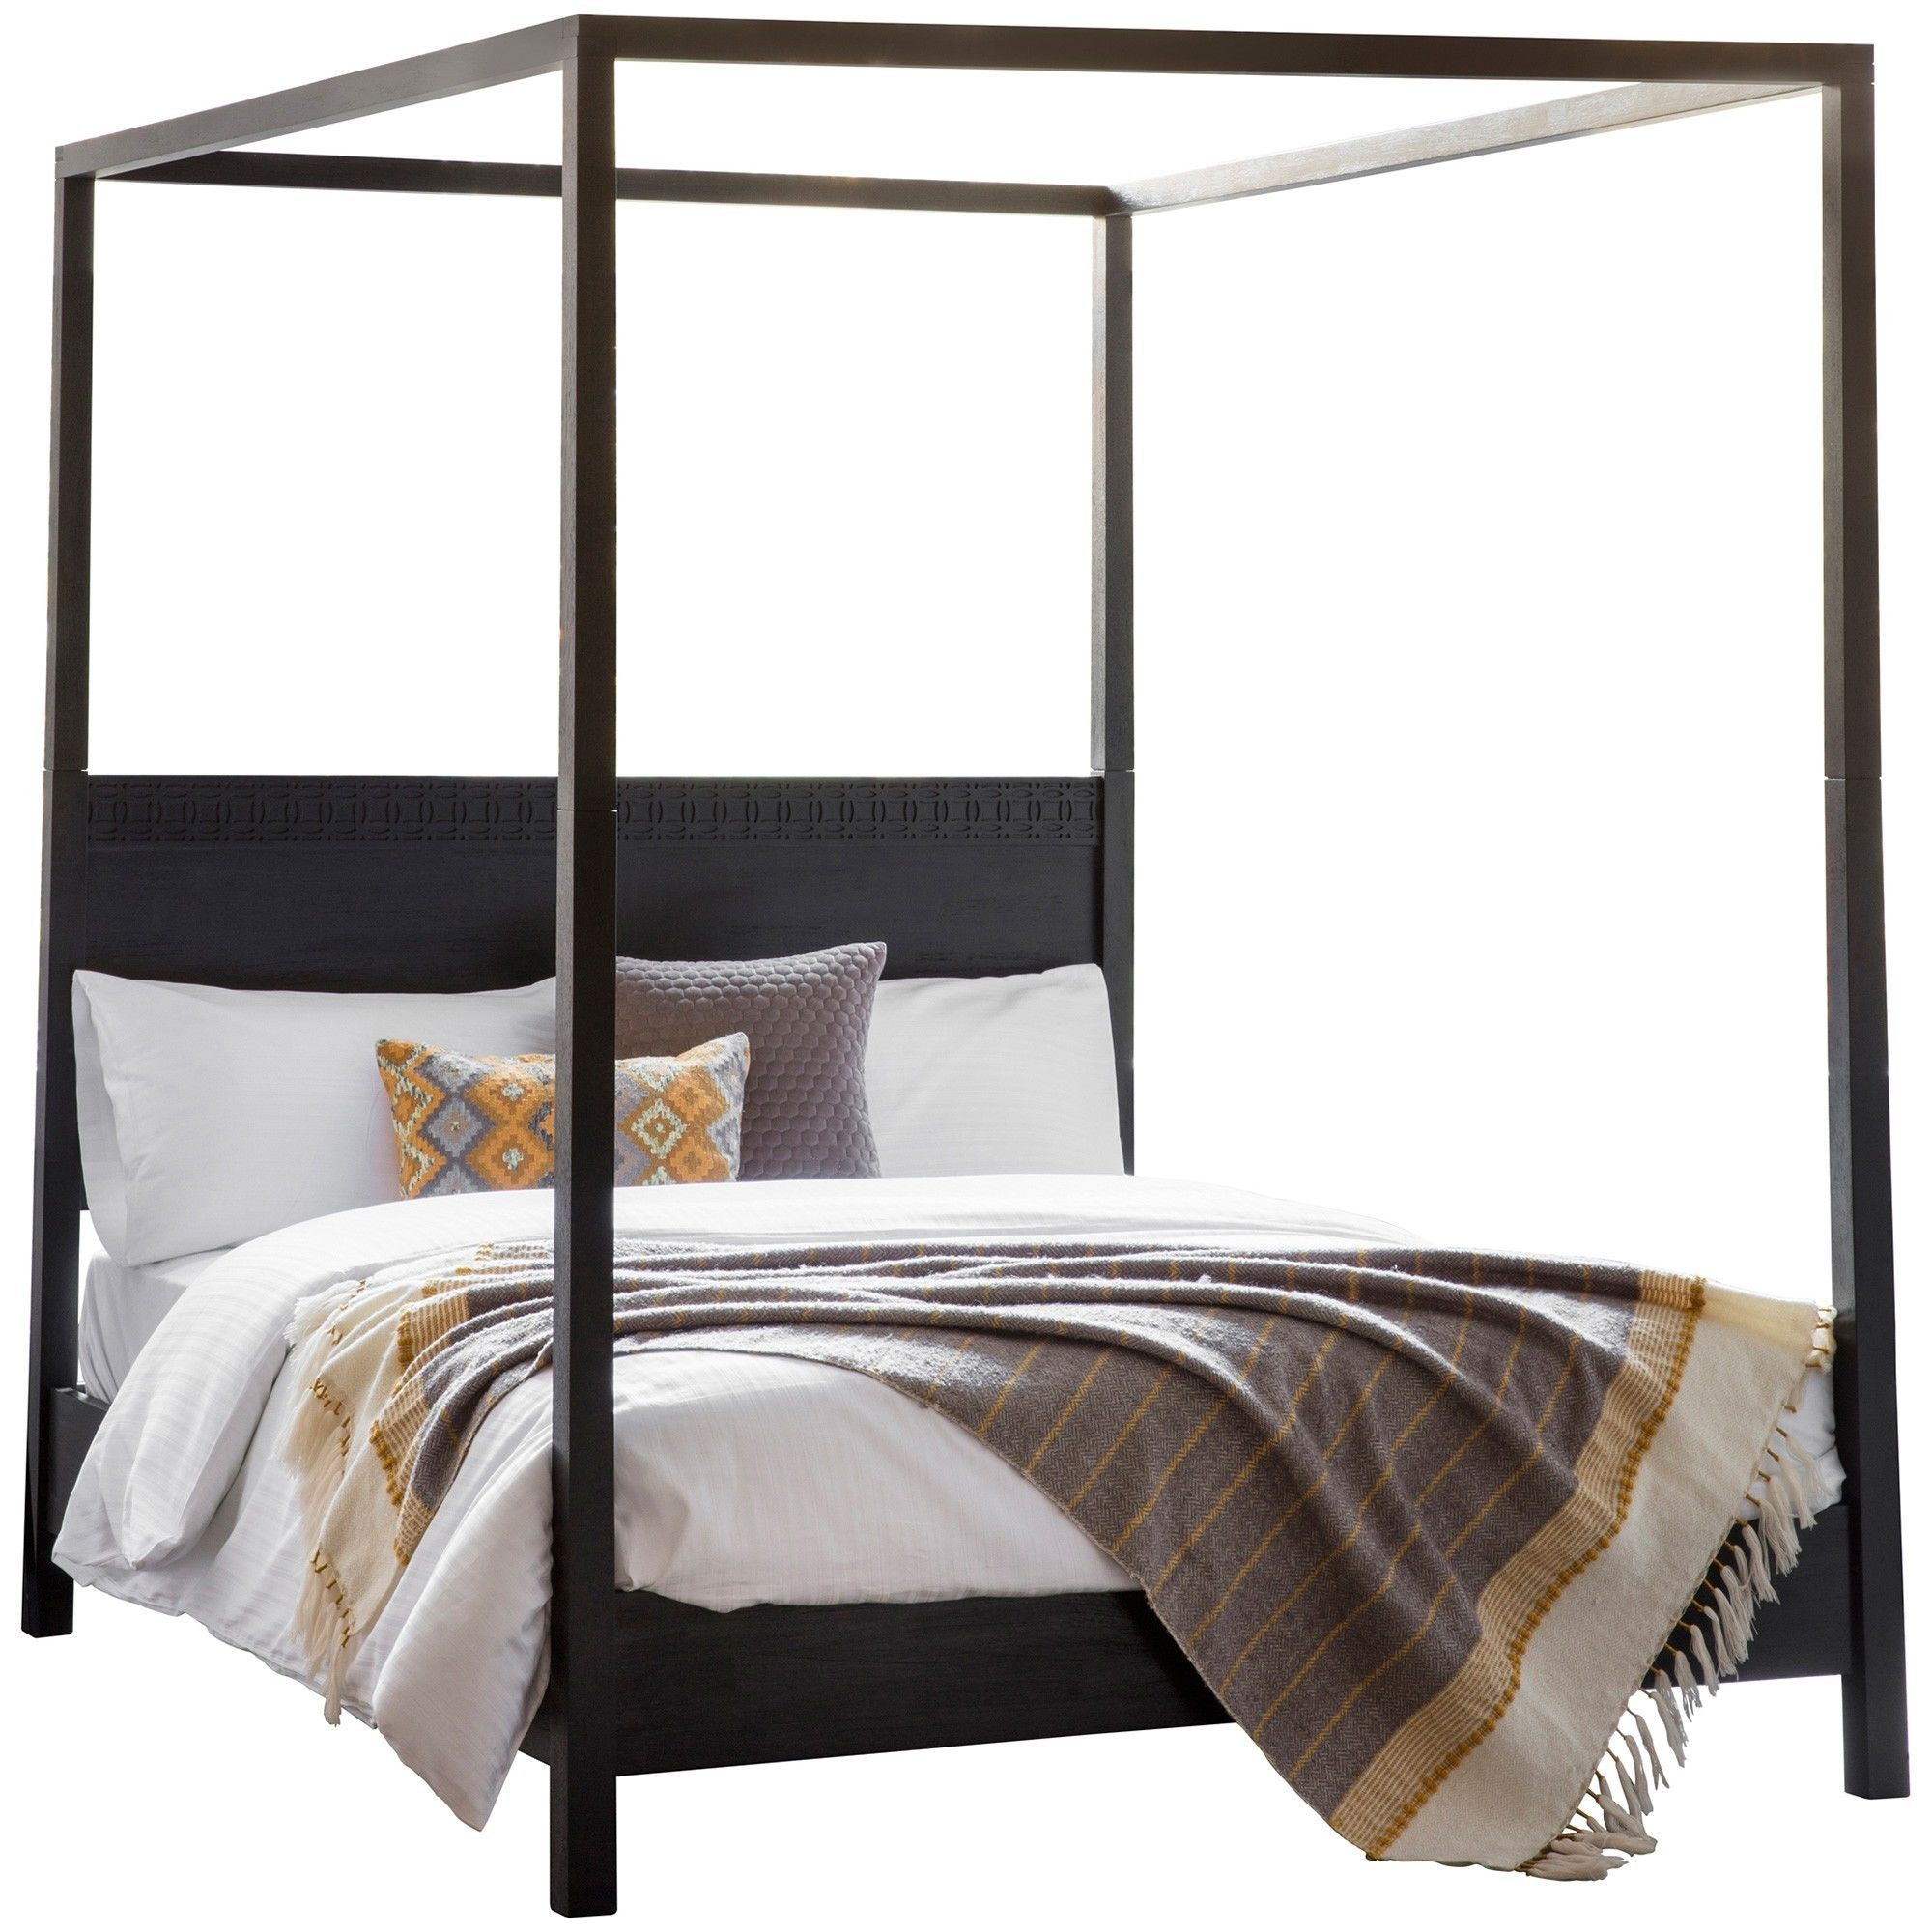 Baila Boutique Mango Wood 4 Poster Bed King In 2019 4 Poster